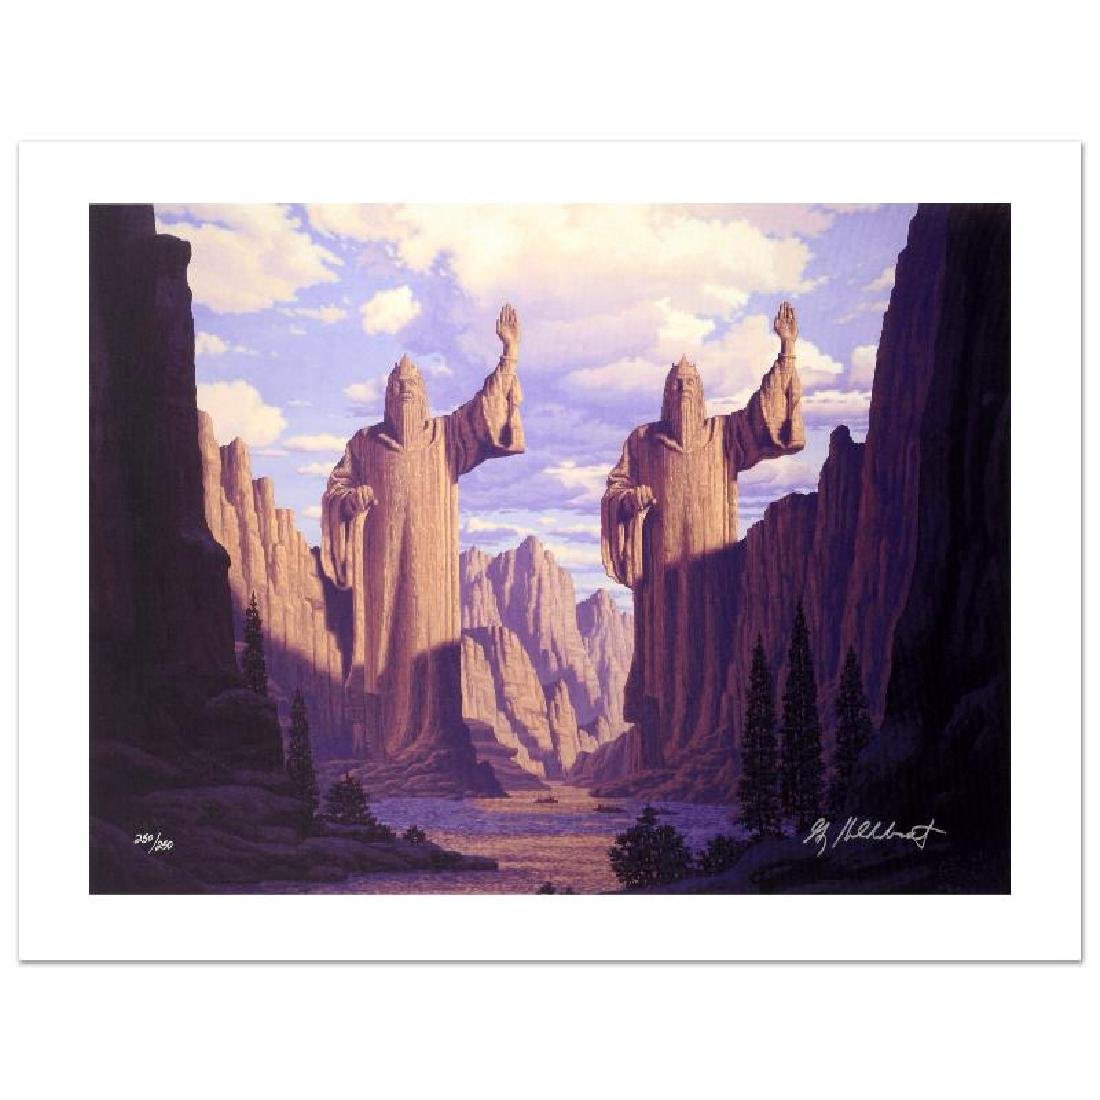 """The Pillars Of The Kings"" Limited Edition Giclee on"